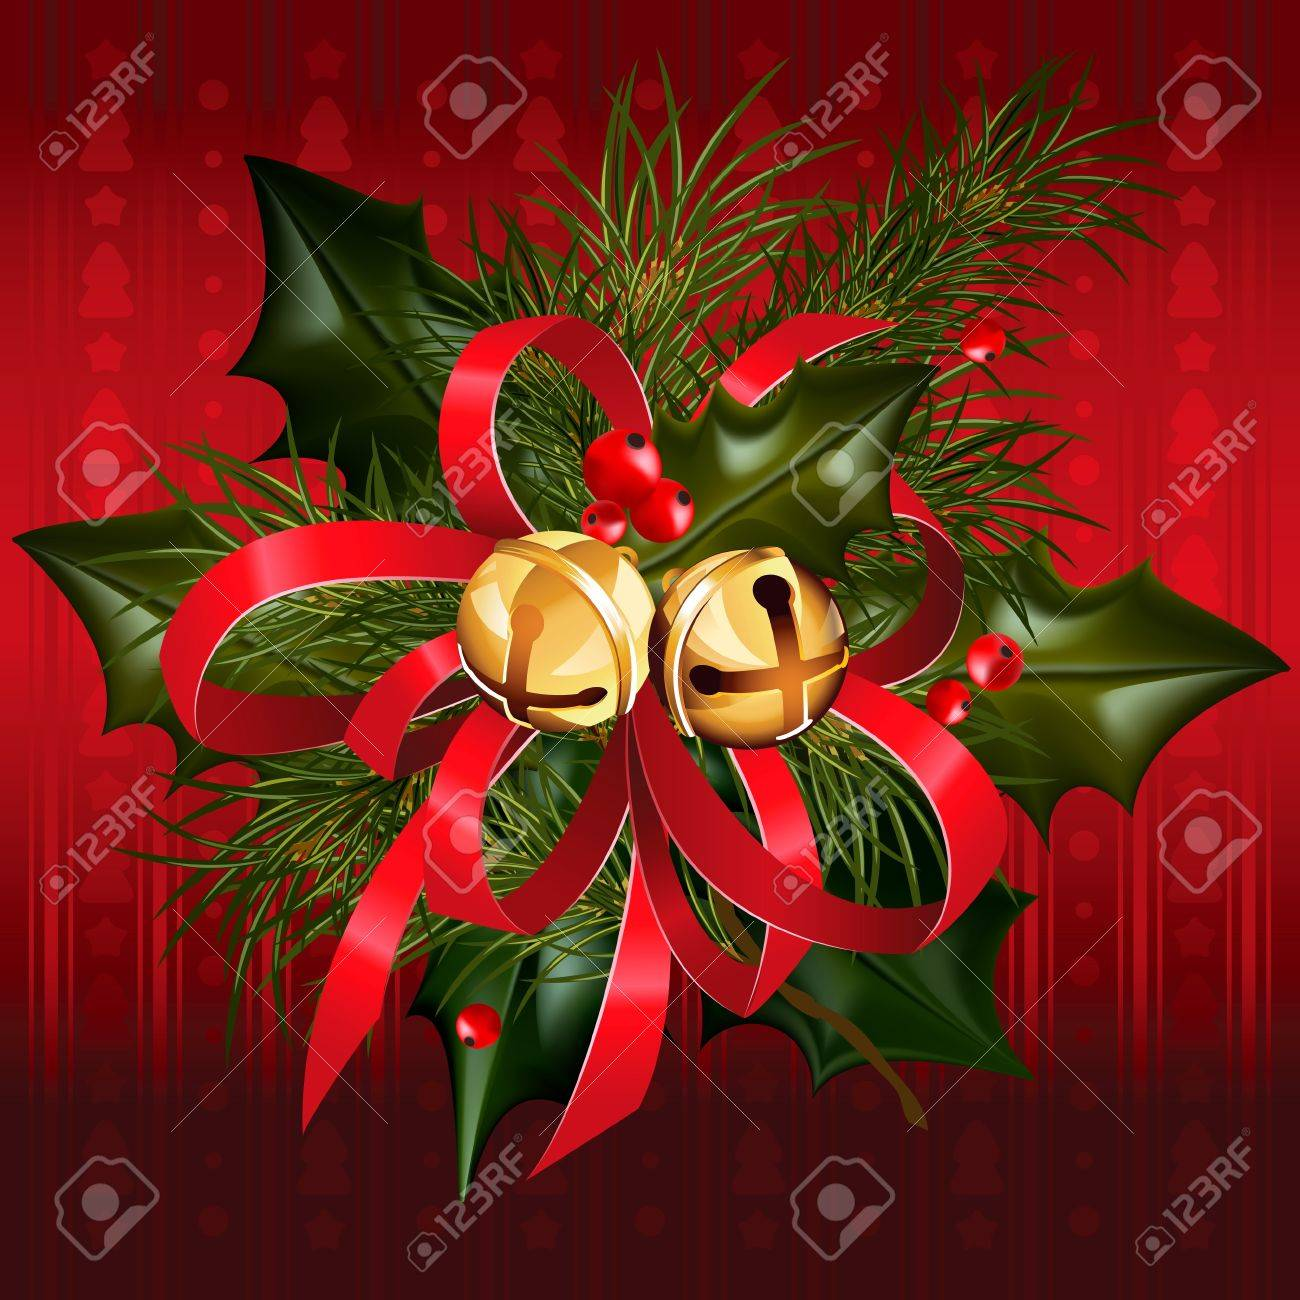 Pine Branches For Decoration Christmas Jingle Bells With Red Ribbon Holly And Pine Branches